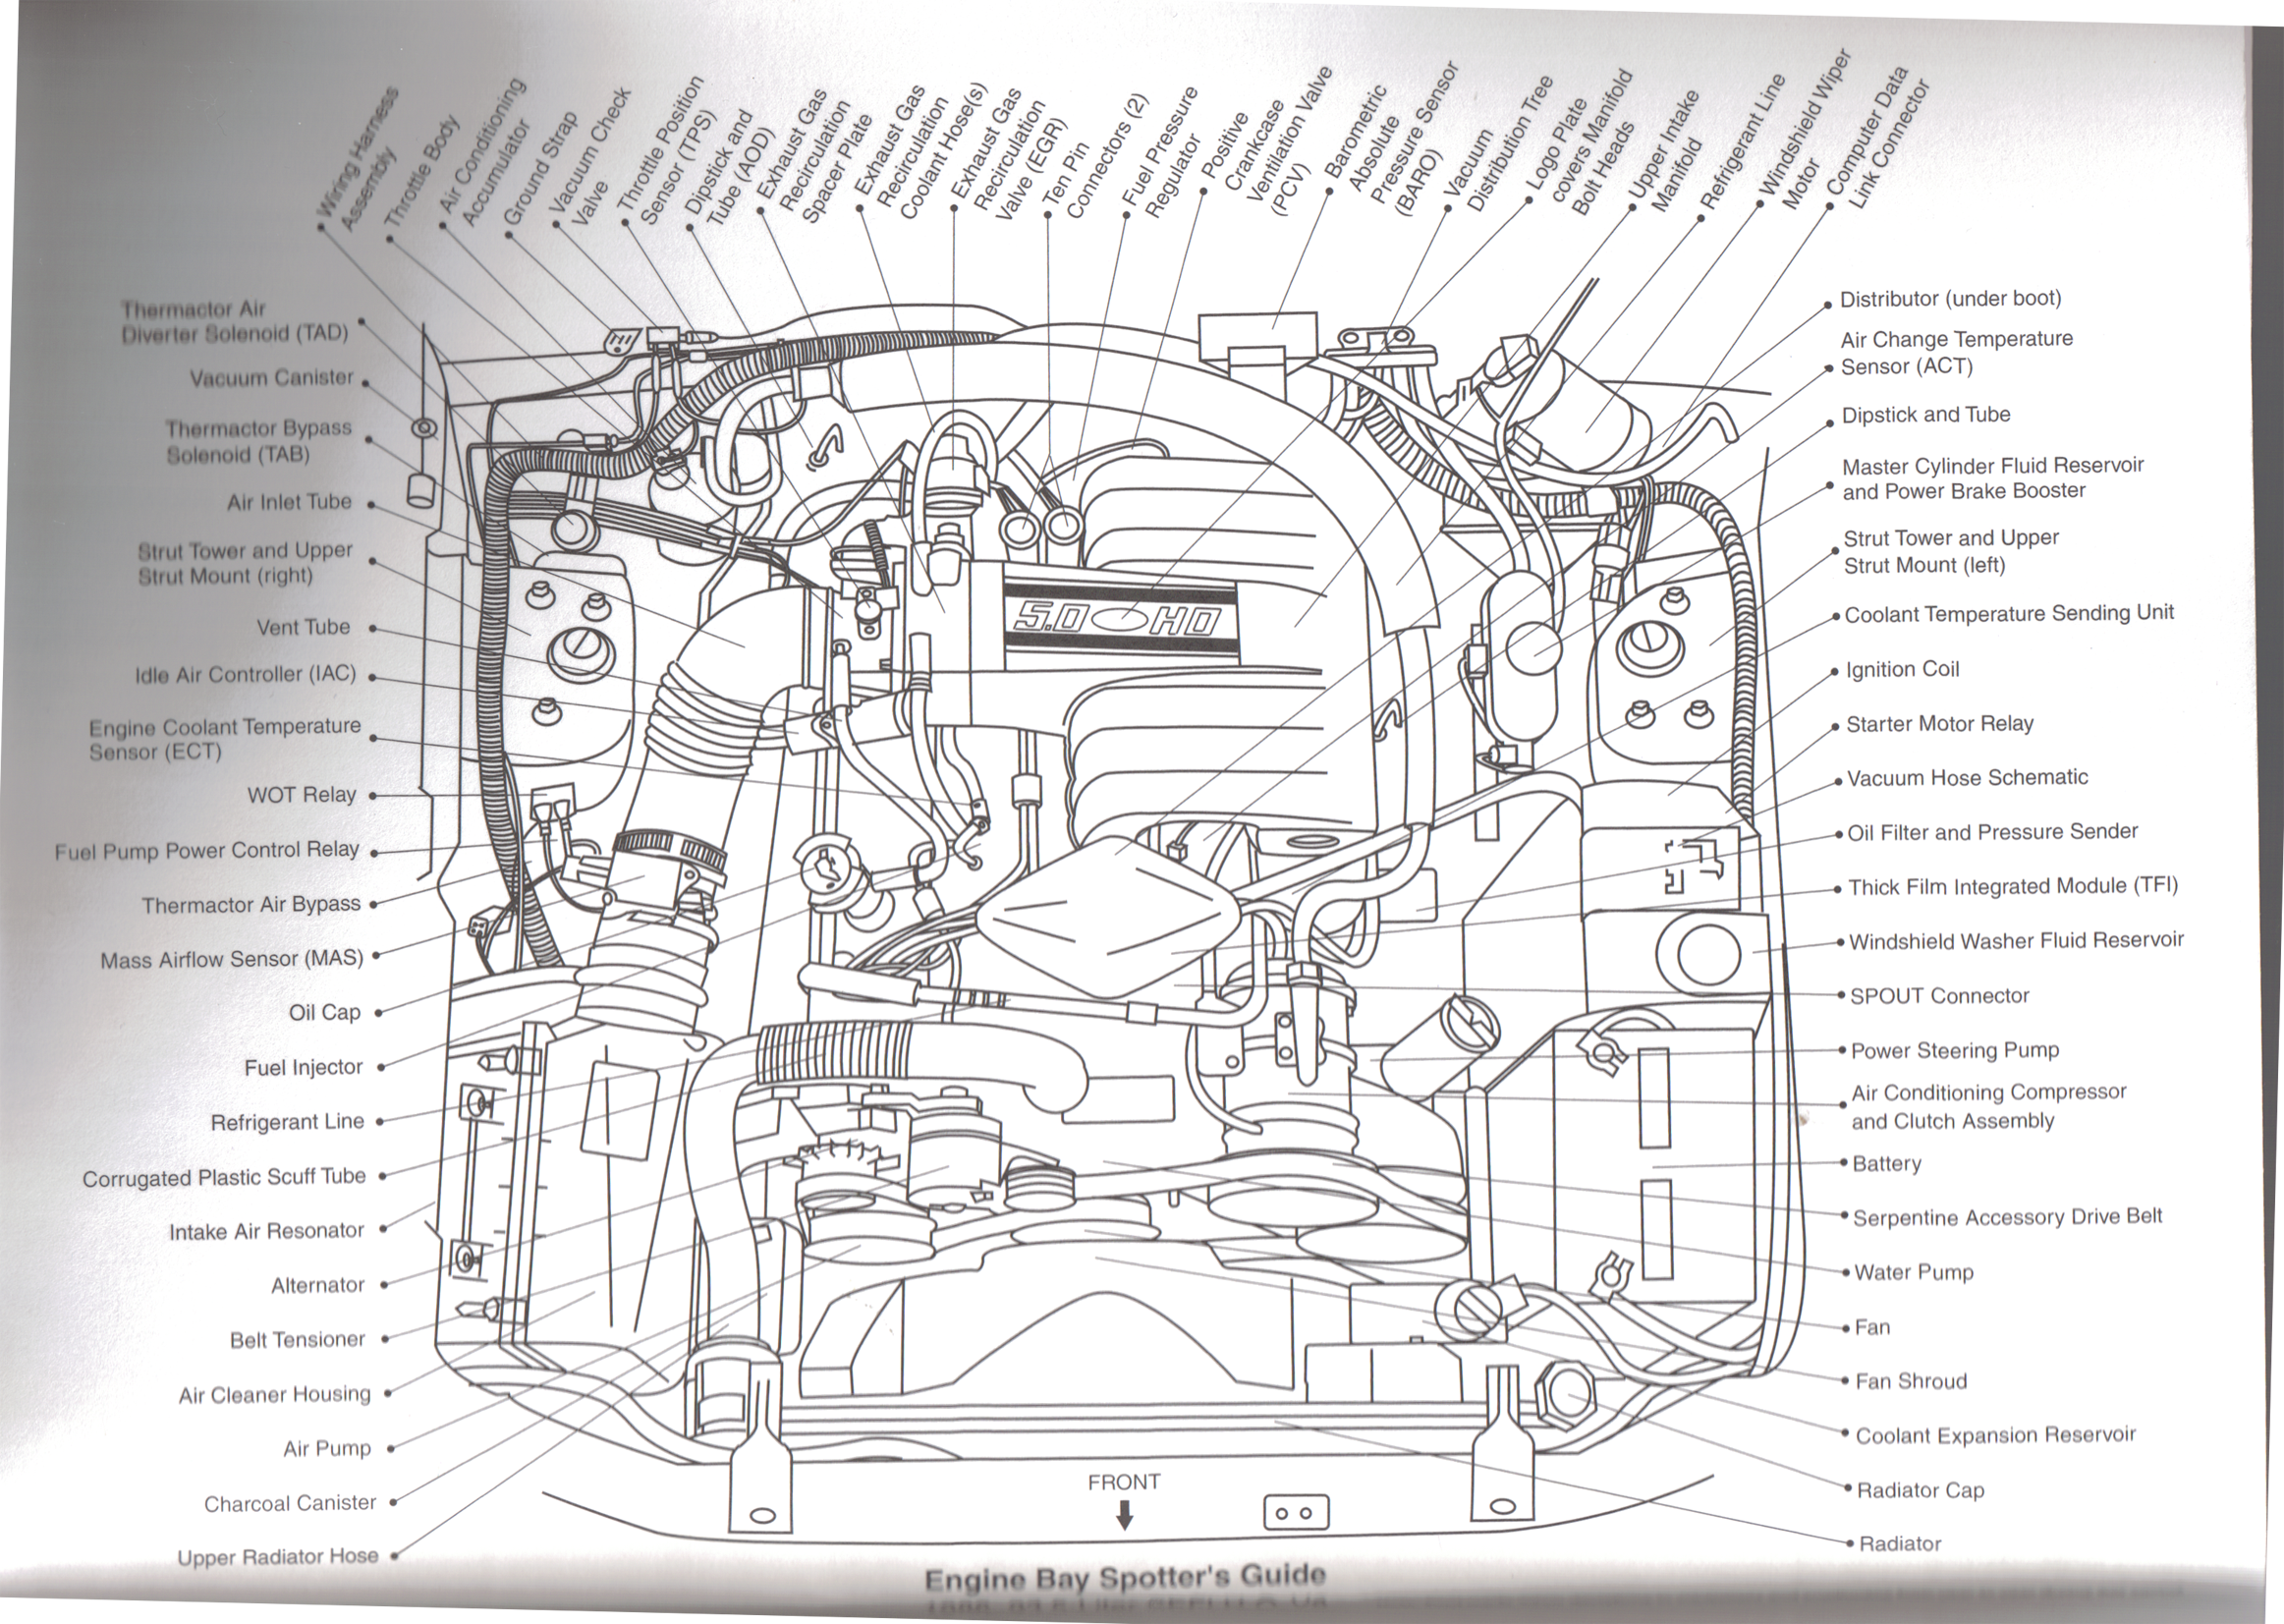 1987 1993 foxbody 5.0 sefi v8 engine part diagram everything you need to know about 1979 1993 foxbody mustangs 1989 Mustang Alternator Wiring Diagram at creativeand.co